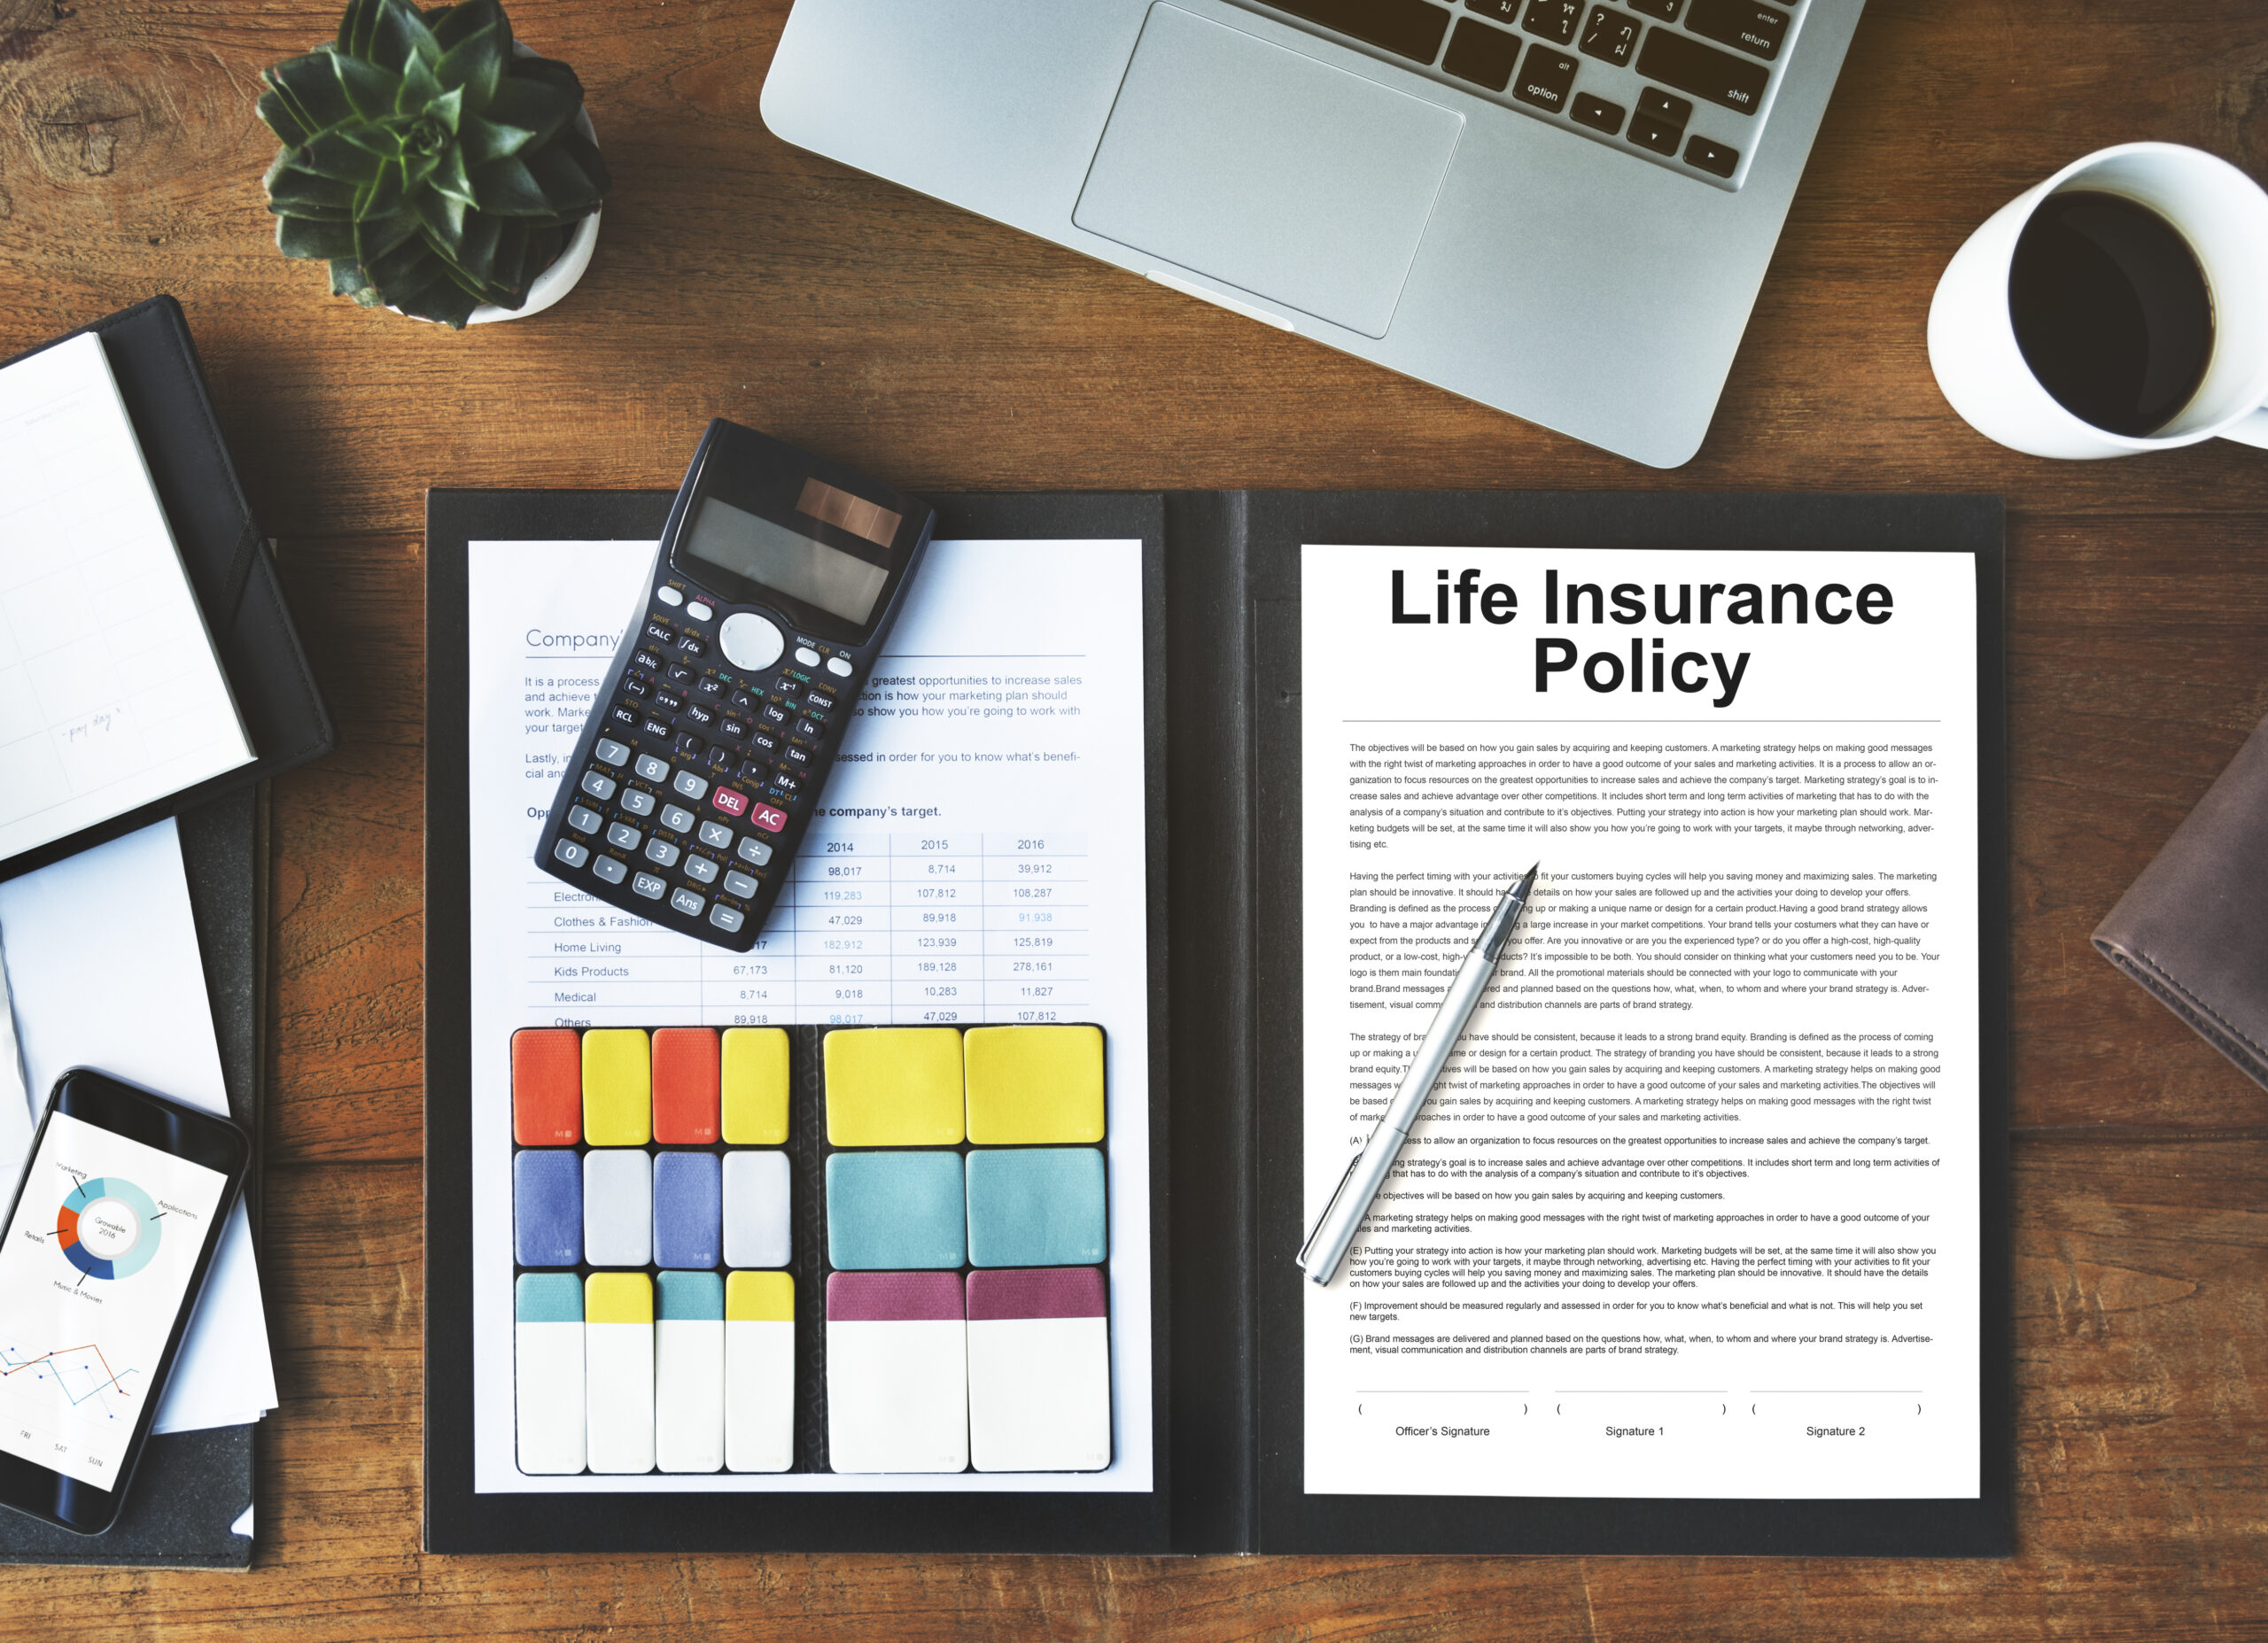 What To Do When Term Life Insurance Expires?